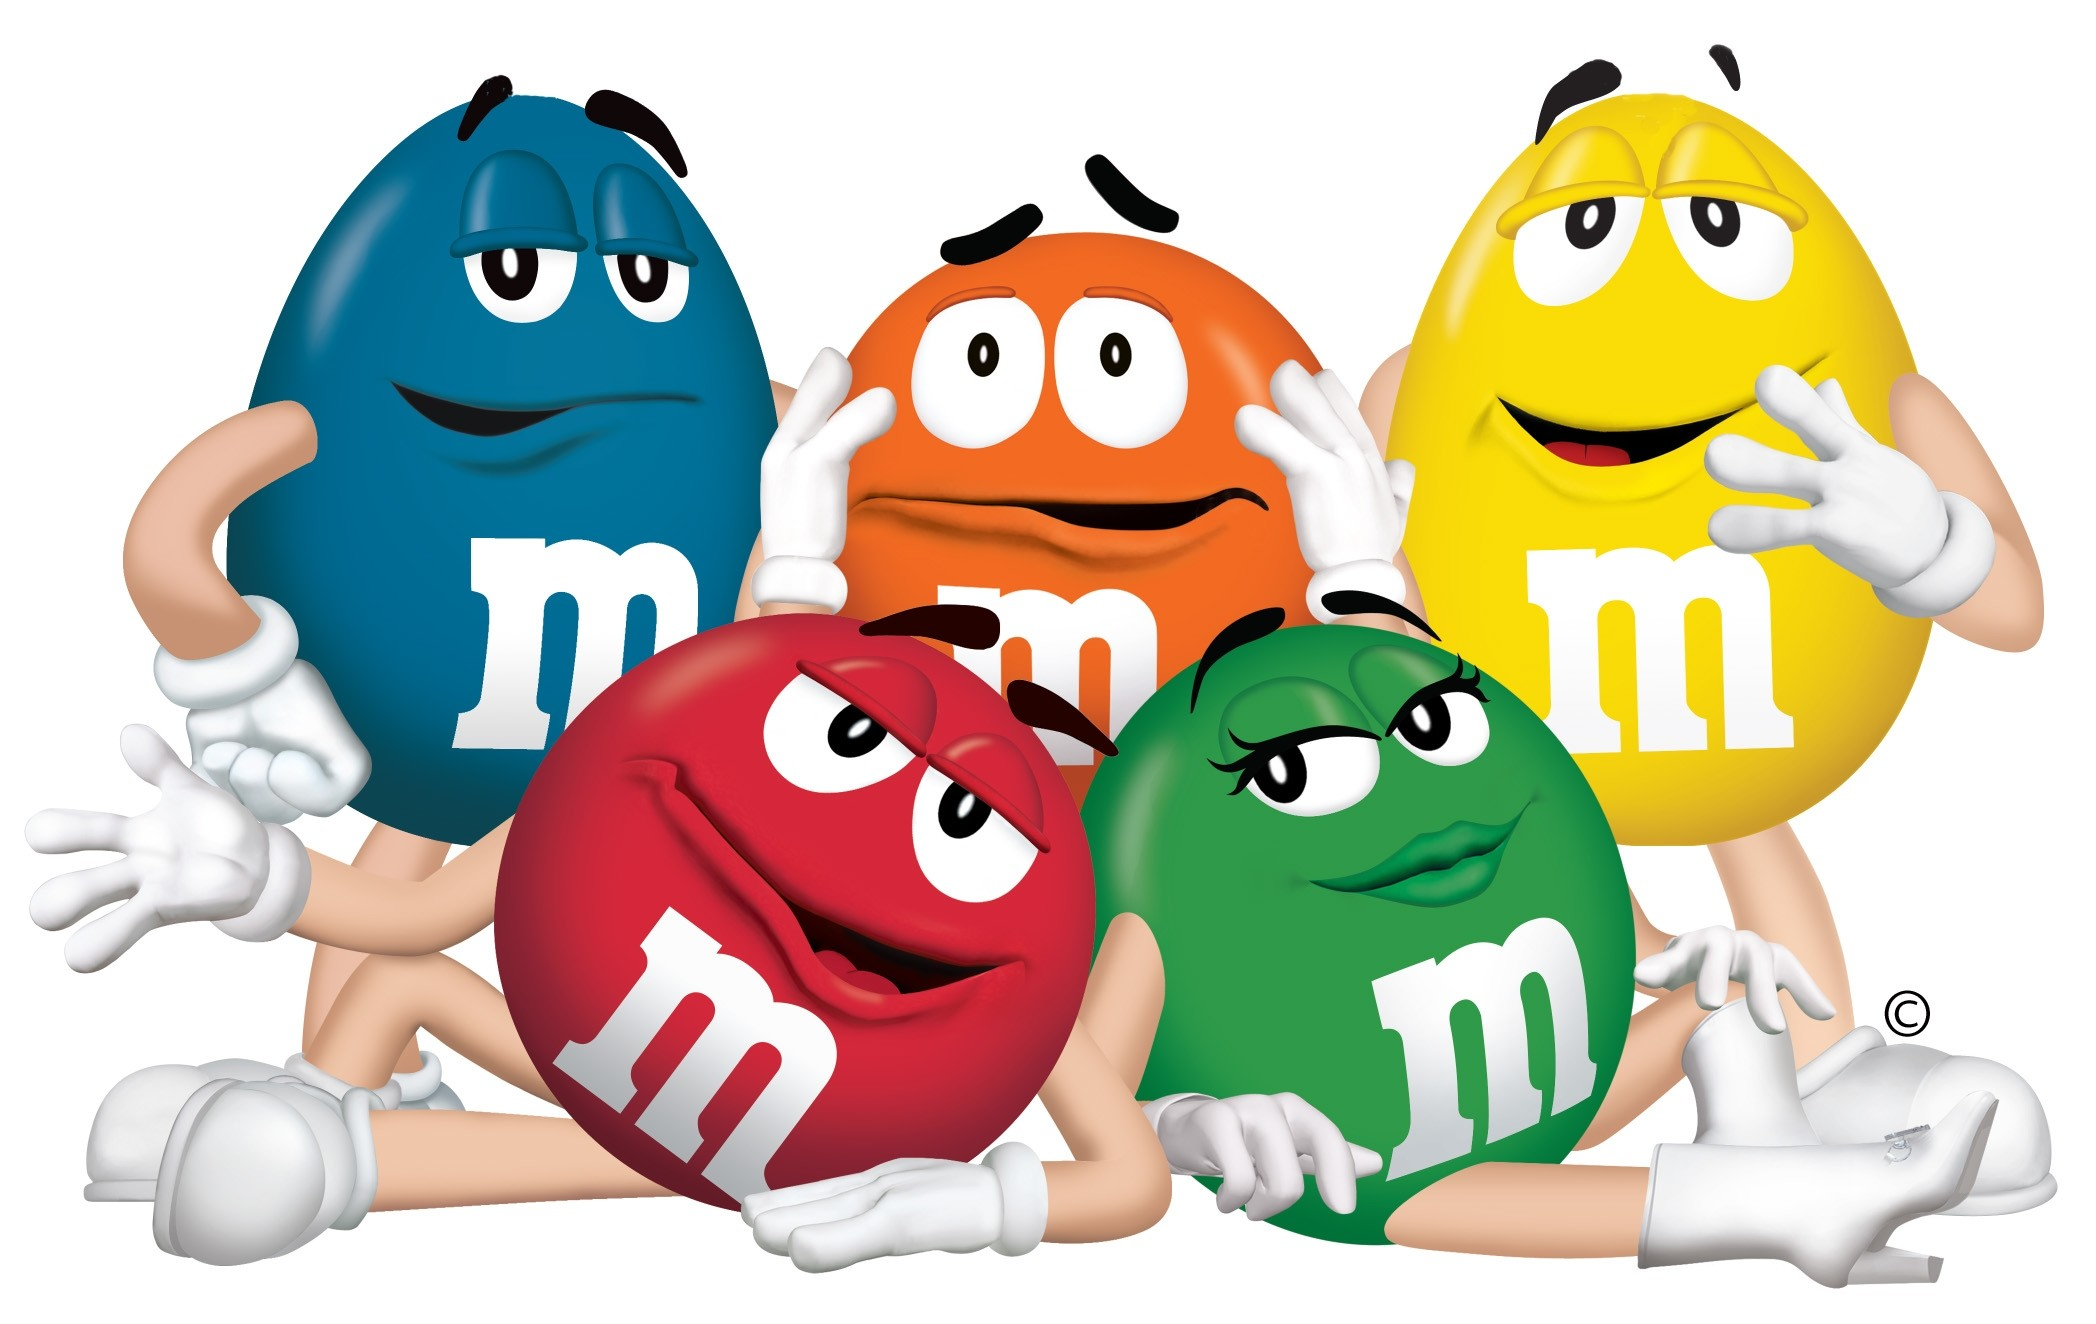 2096x1324 Wallpaper m and m, mm, characters, chocolate, candy, blue, orange